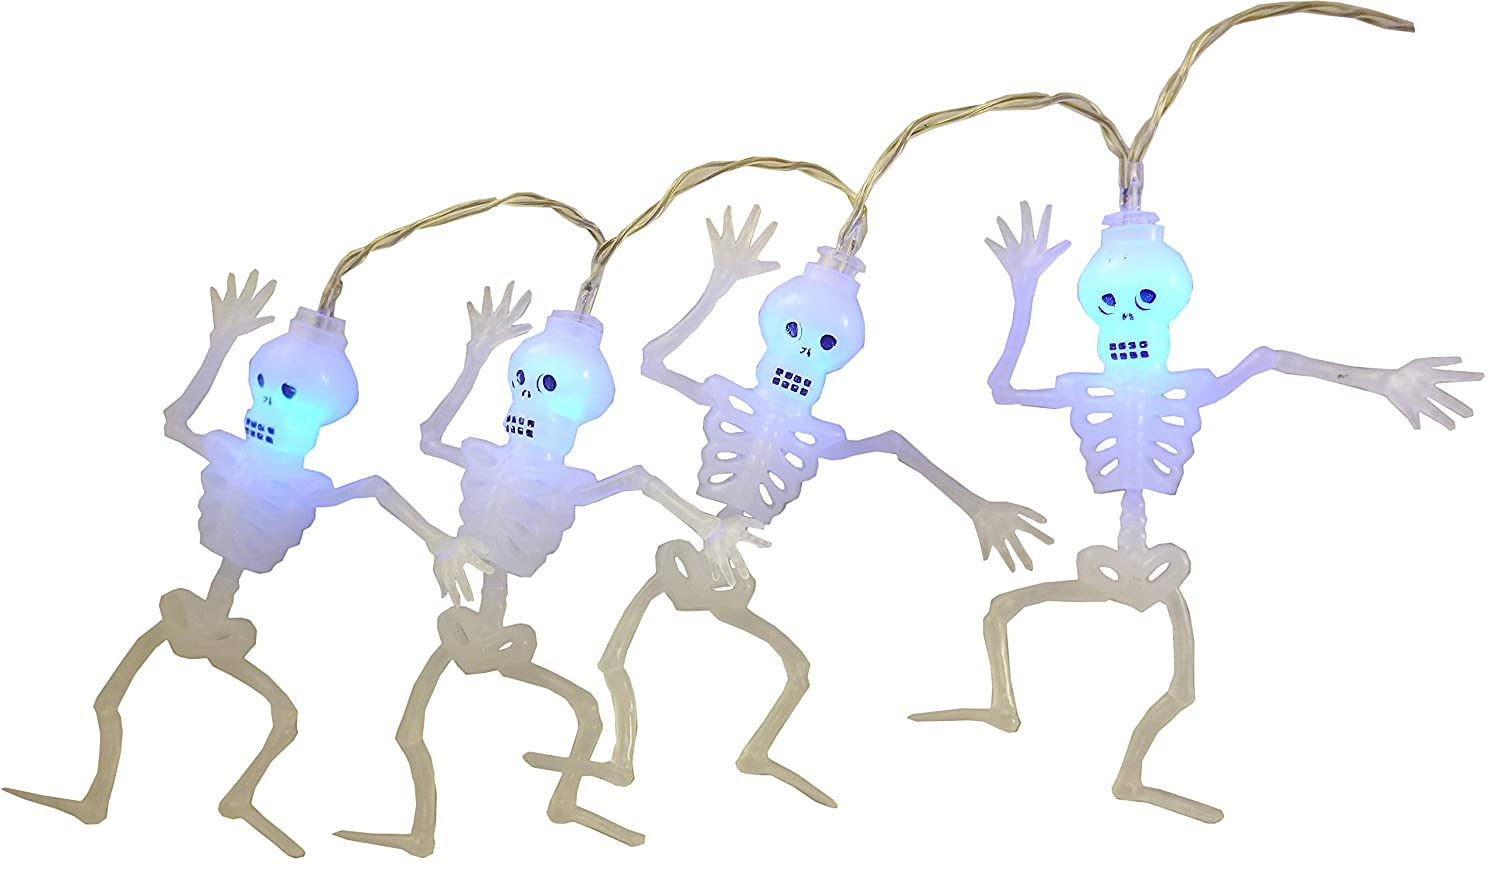 Christmas Concepts® 20 Halloween Skeleton Lights With Blue LED Lights - 1.8m Length - Halloween Lights - Battery Operated